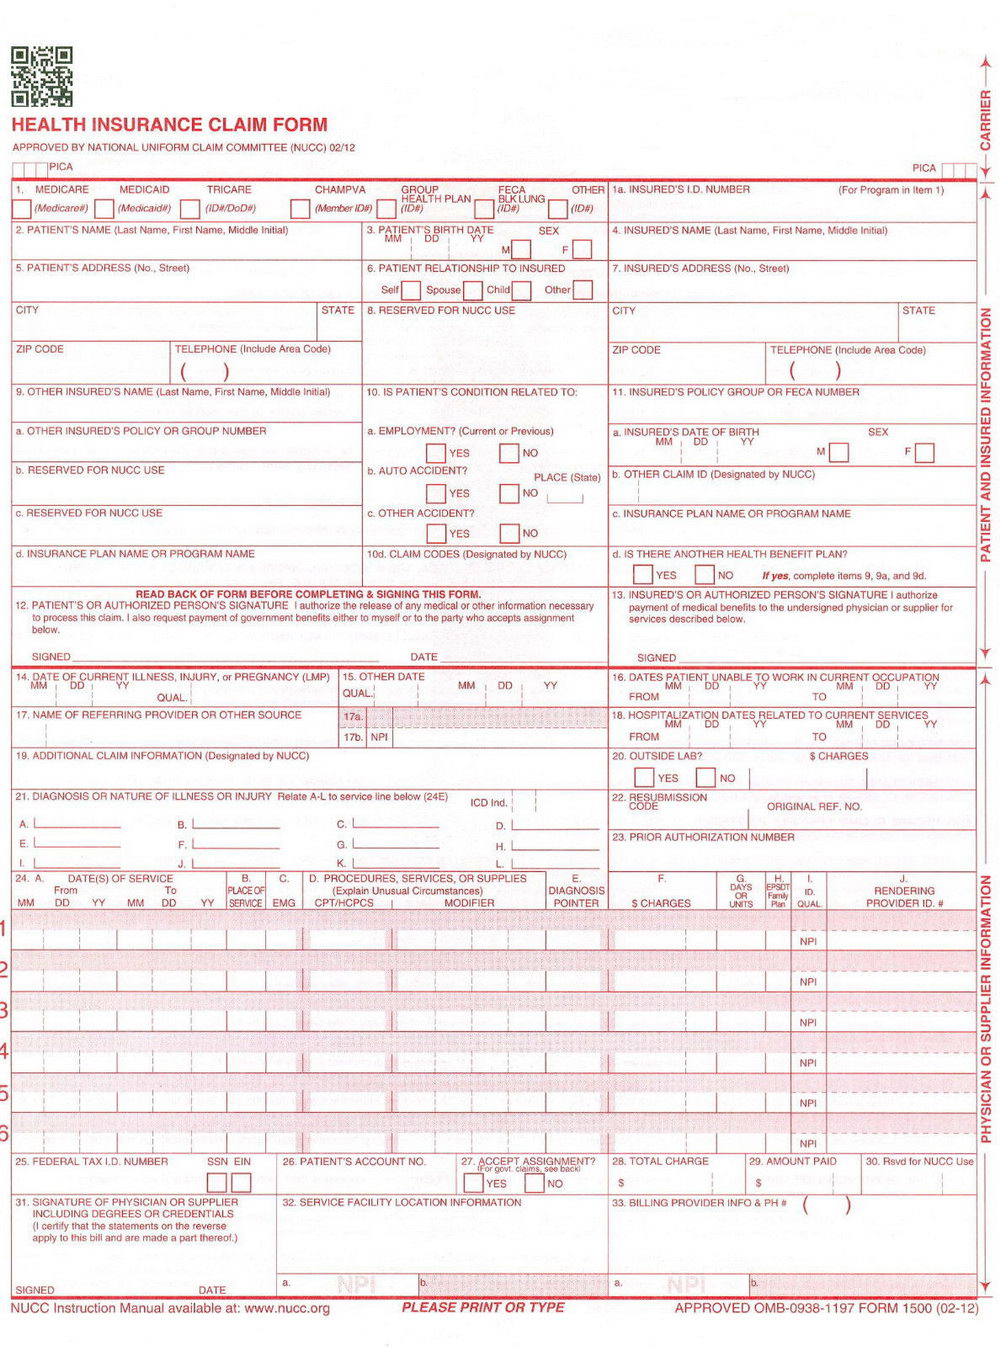 Cms 1500 Form Instructions 2017